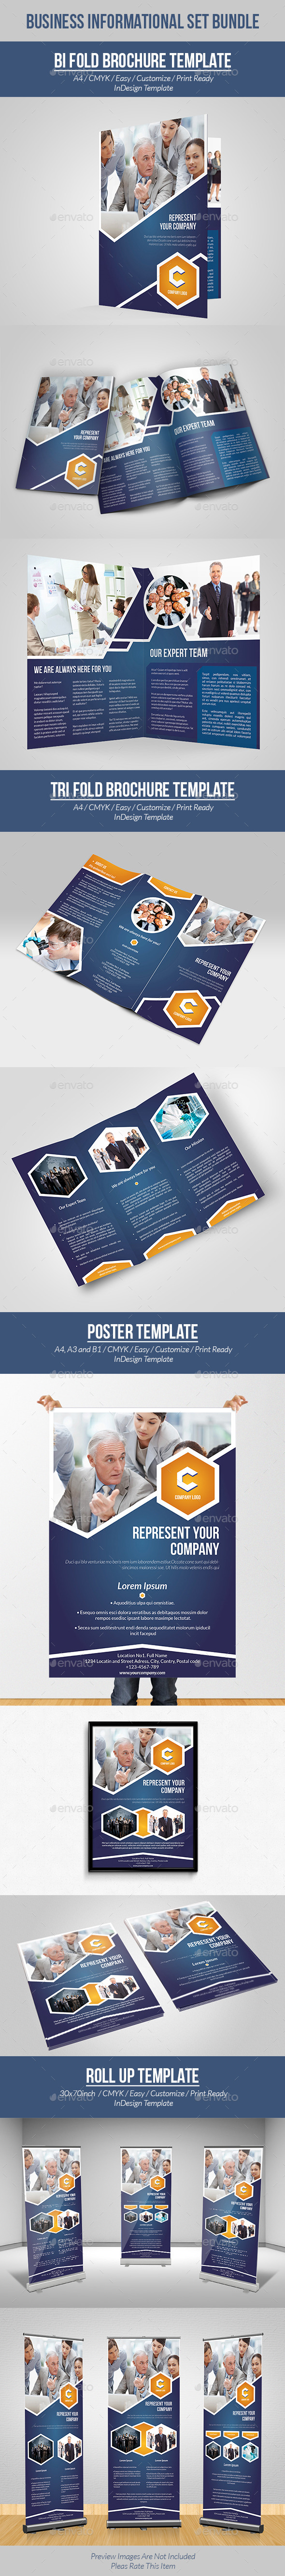 GraphicRiver Business Informational Set Bundle 9752039